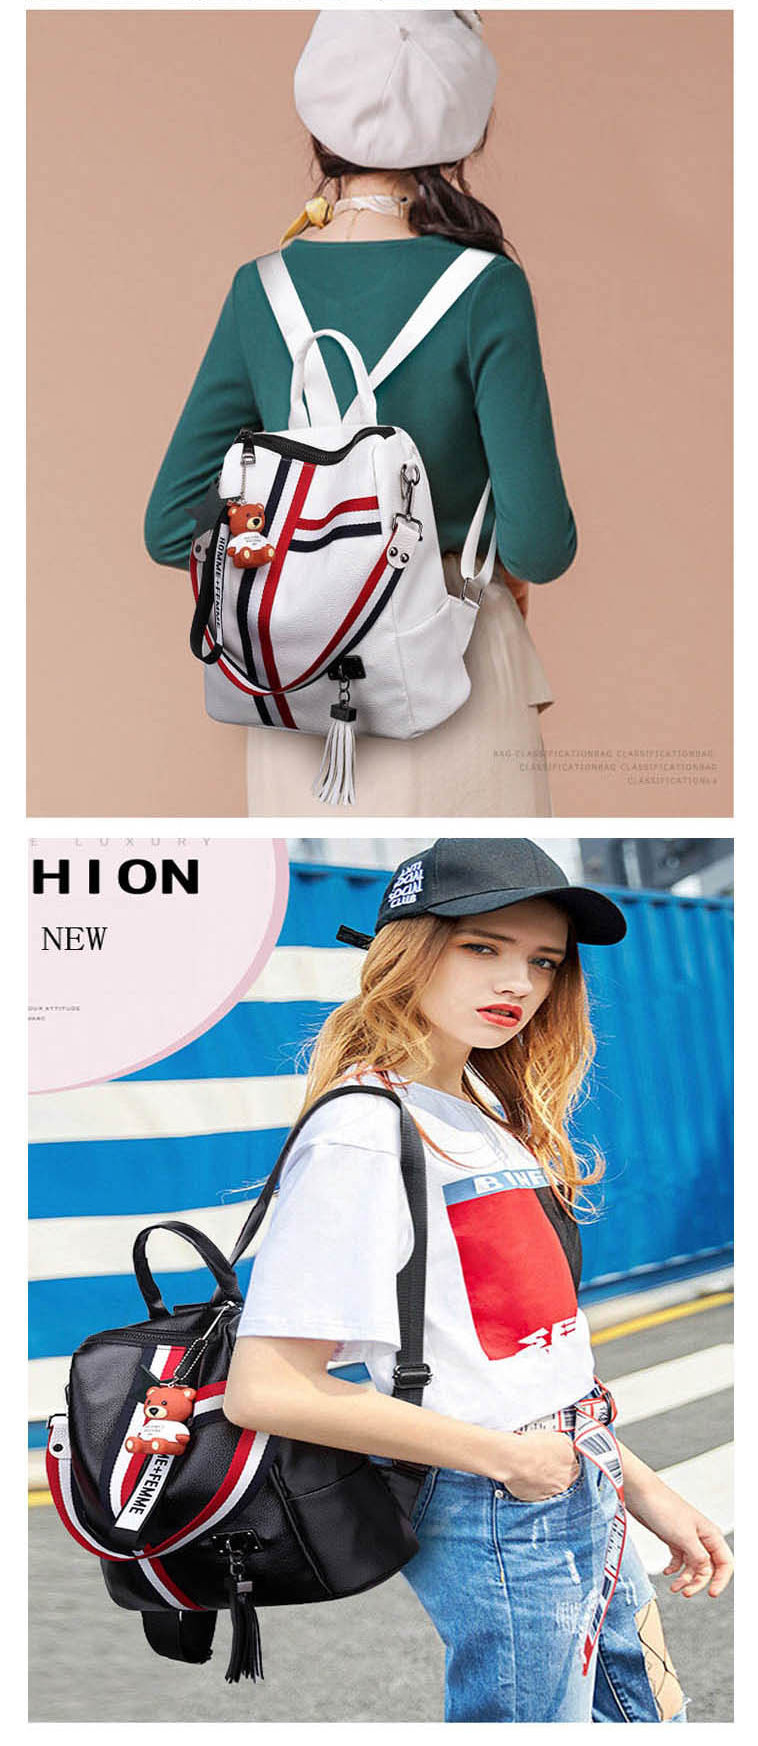 H1368ebdf2ee54f7b8da5c4e6e08289e0R bags for women 2019 new retro fashion zipper ladies backpack PU Leather high quality school bag shoulder bag for youth bags